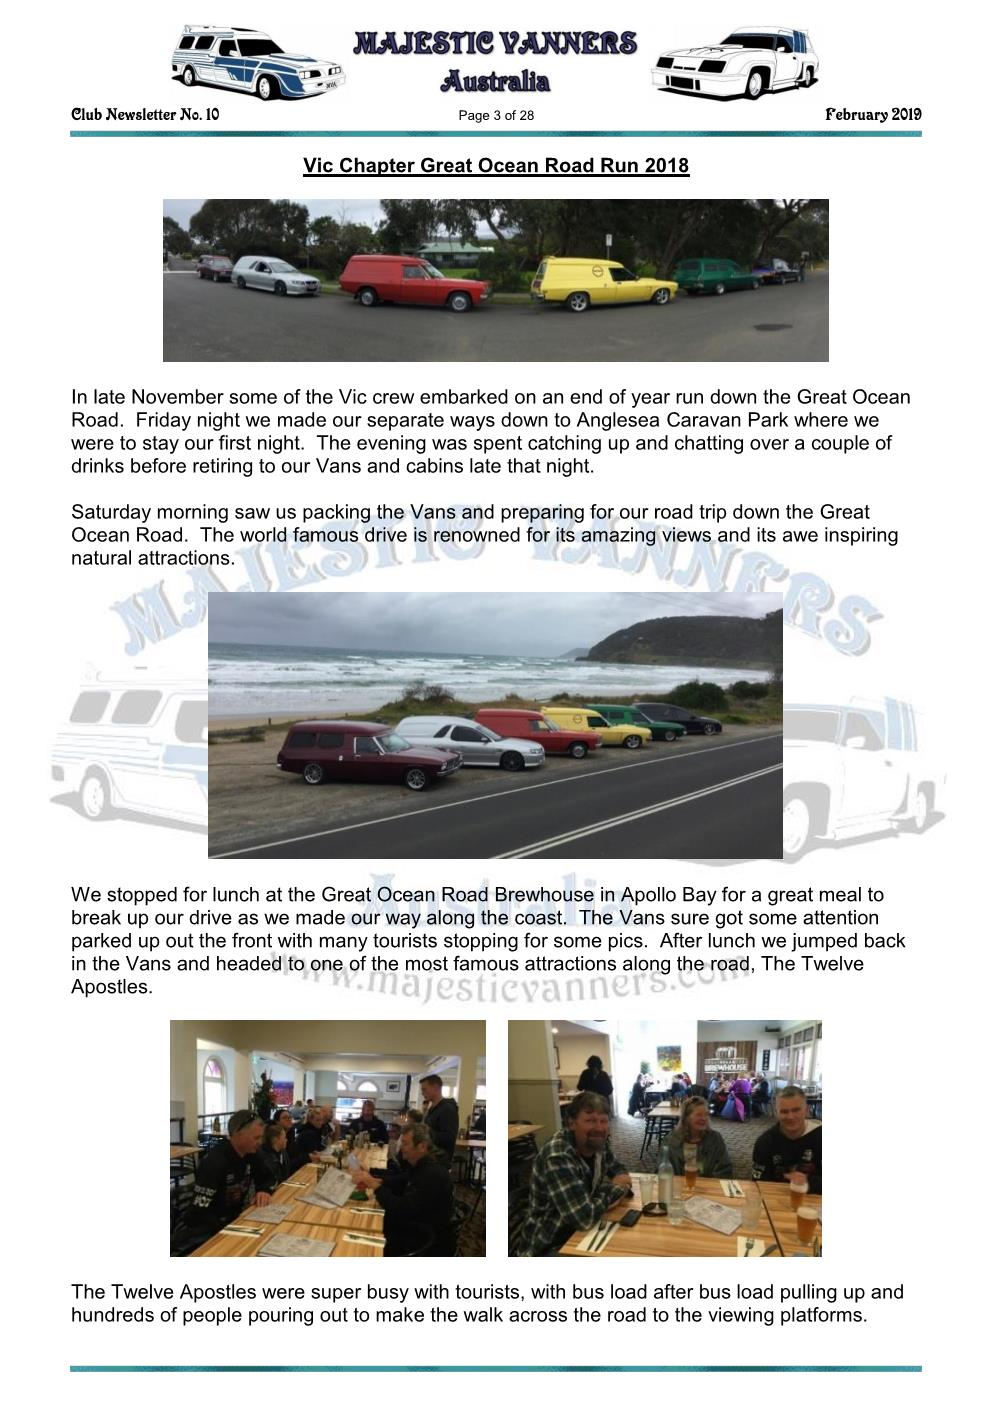 MAJESTIC VANNERS Newsletter Issue No: 10 February 2019 Mv_new11